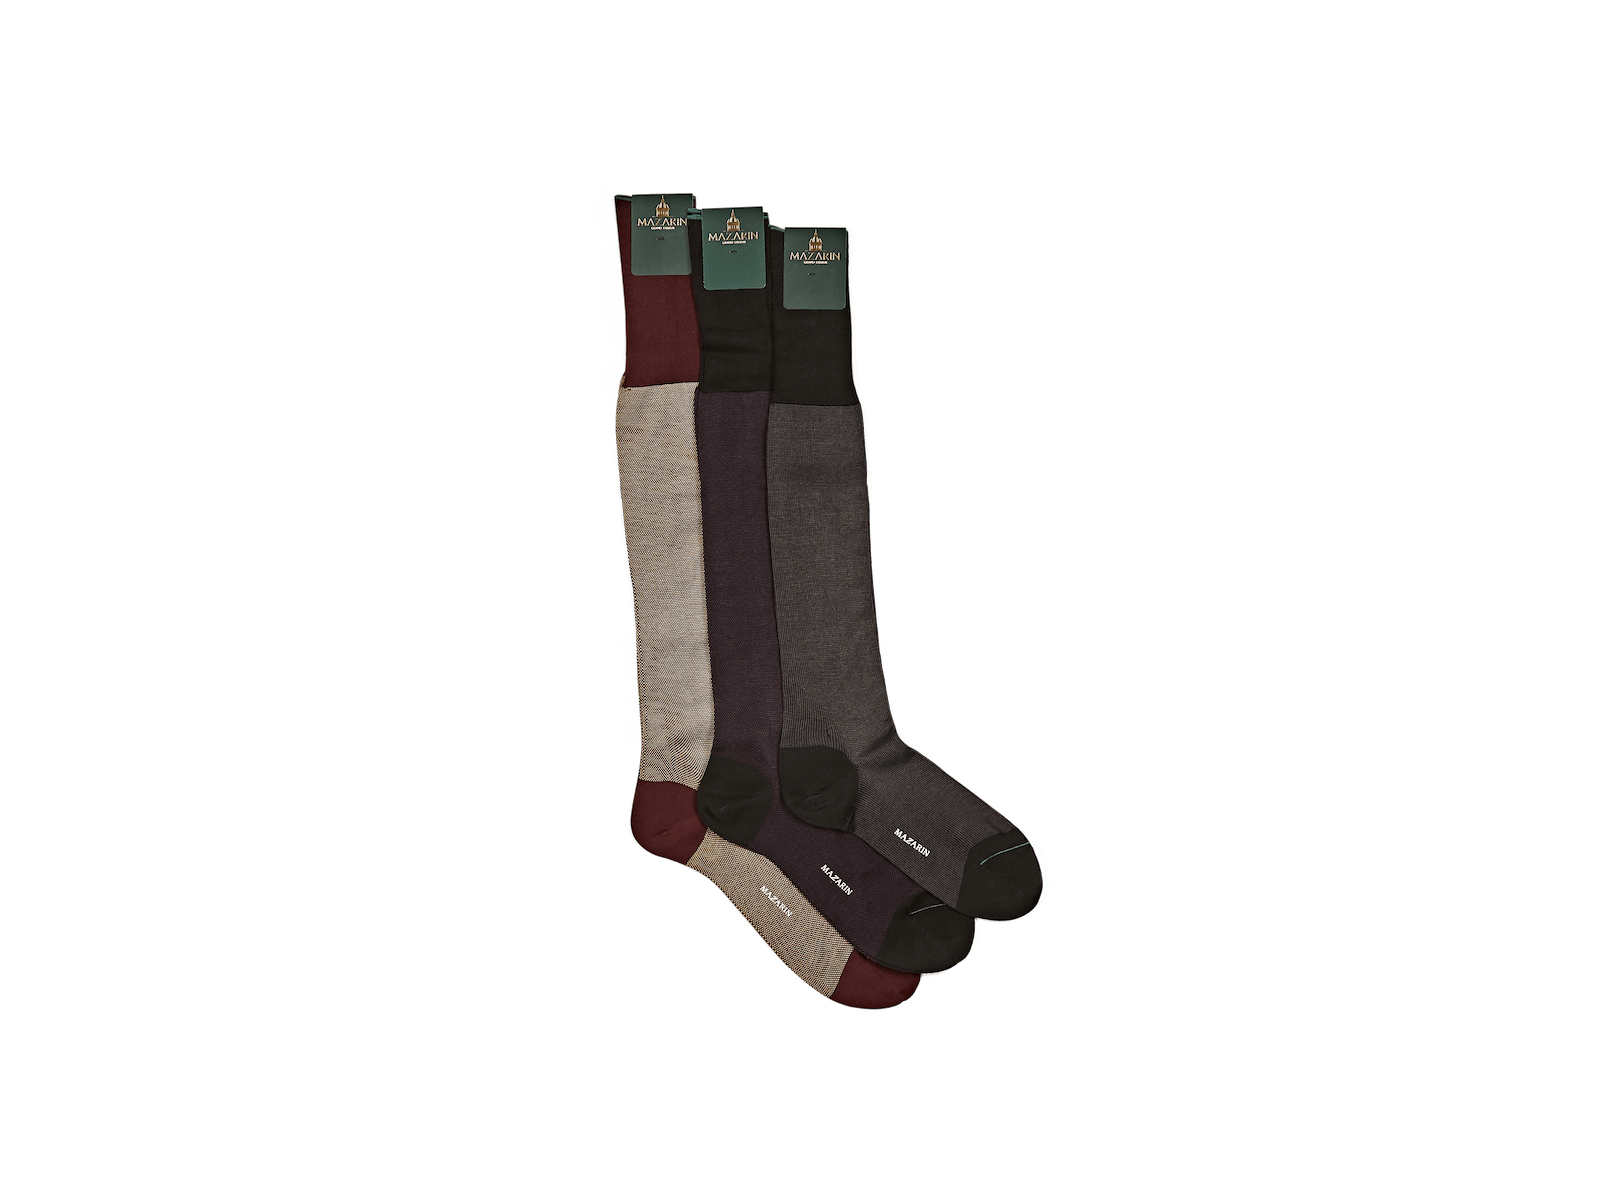 Matching Luxe Socks in Cotton